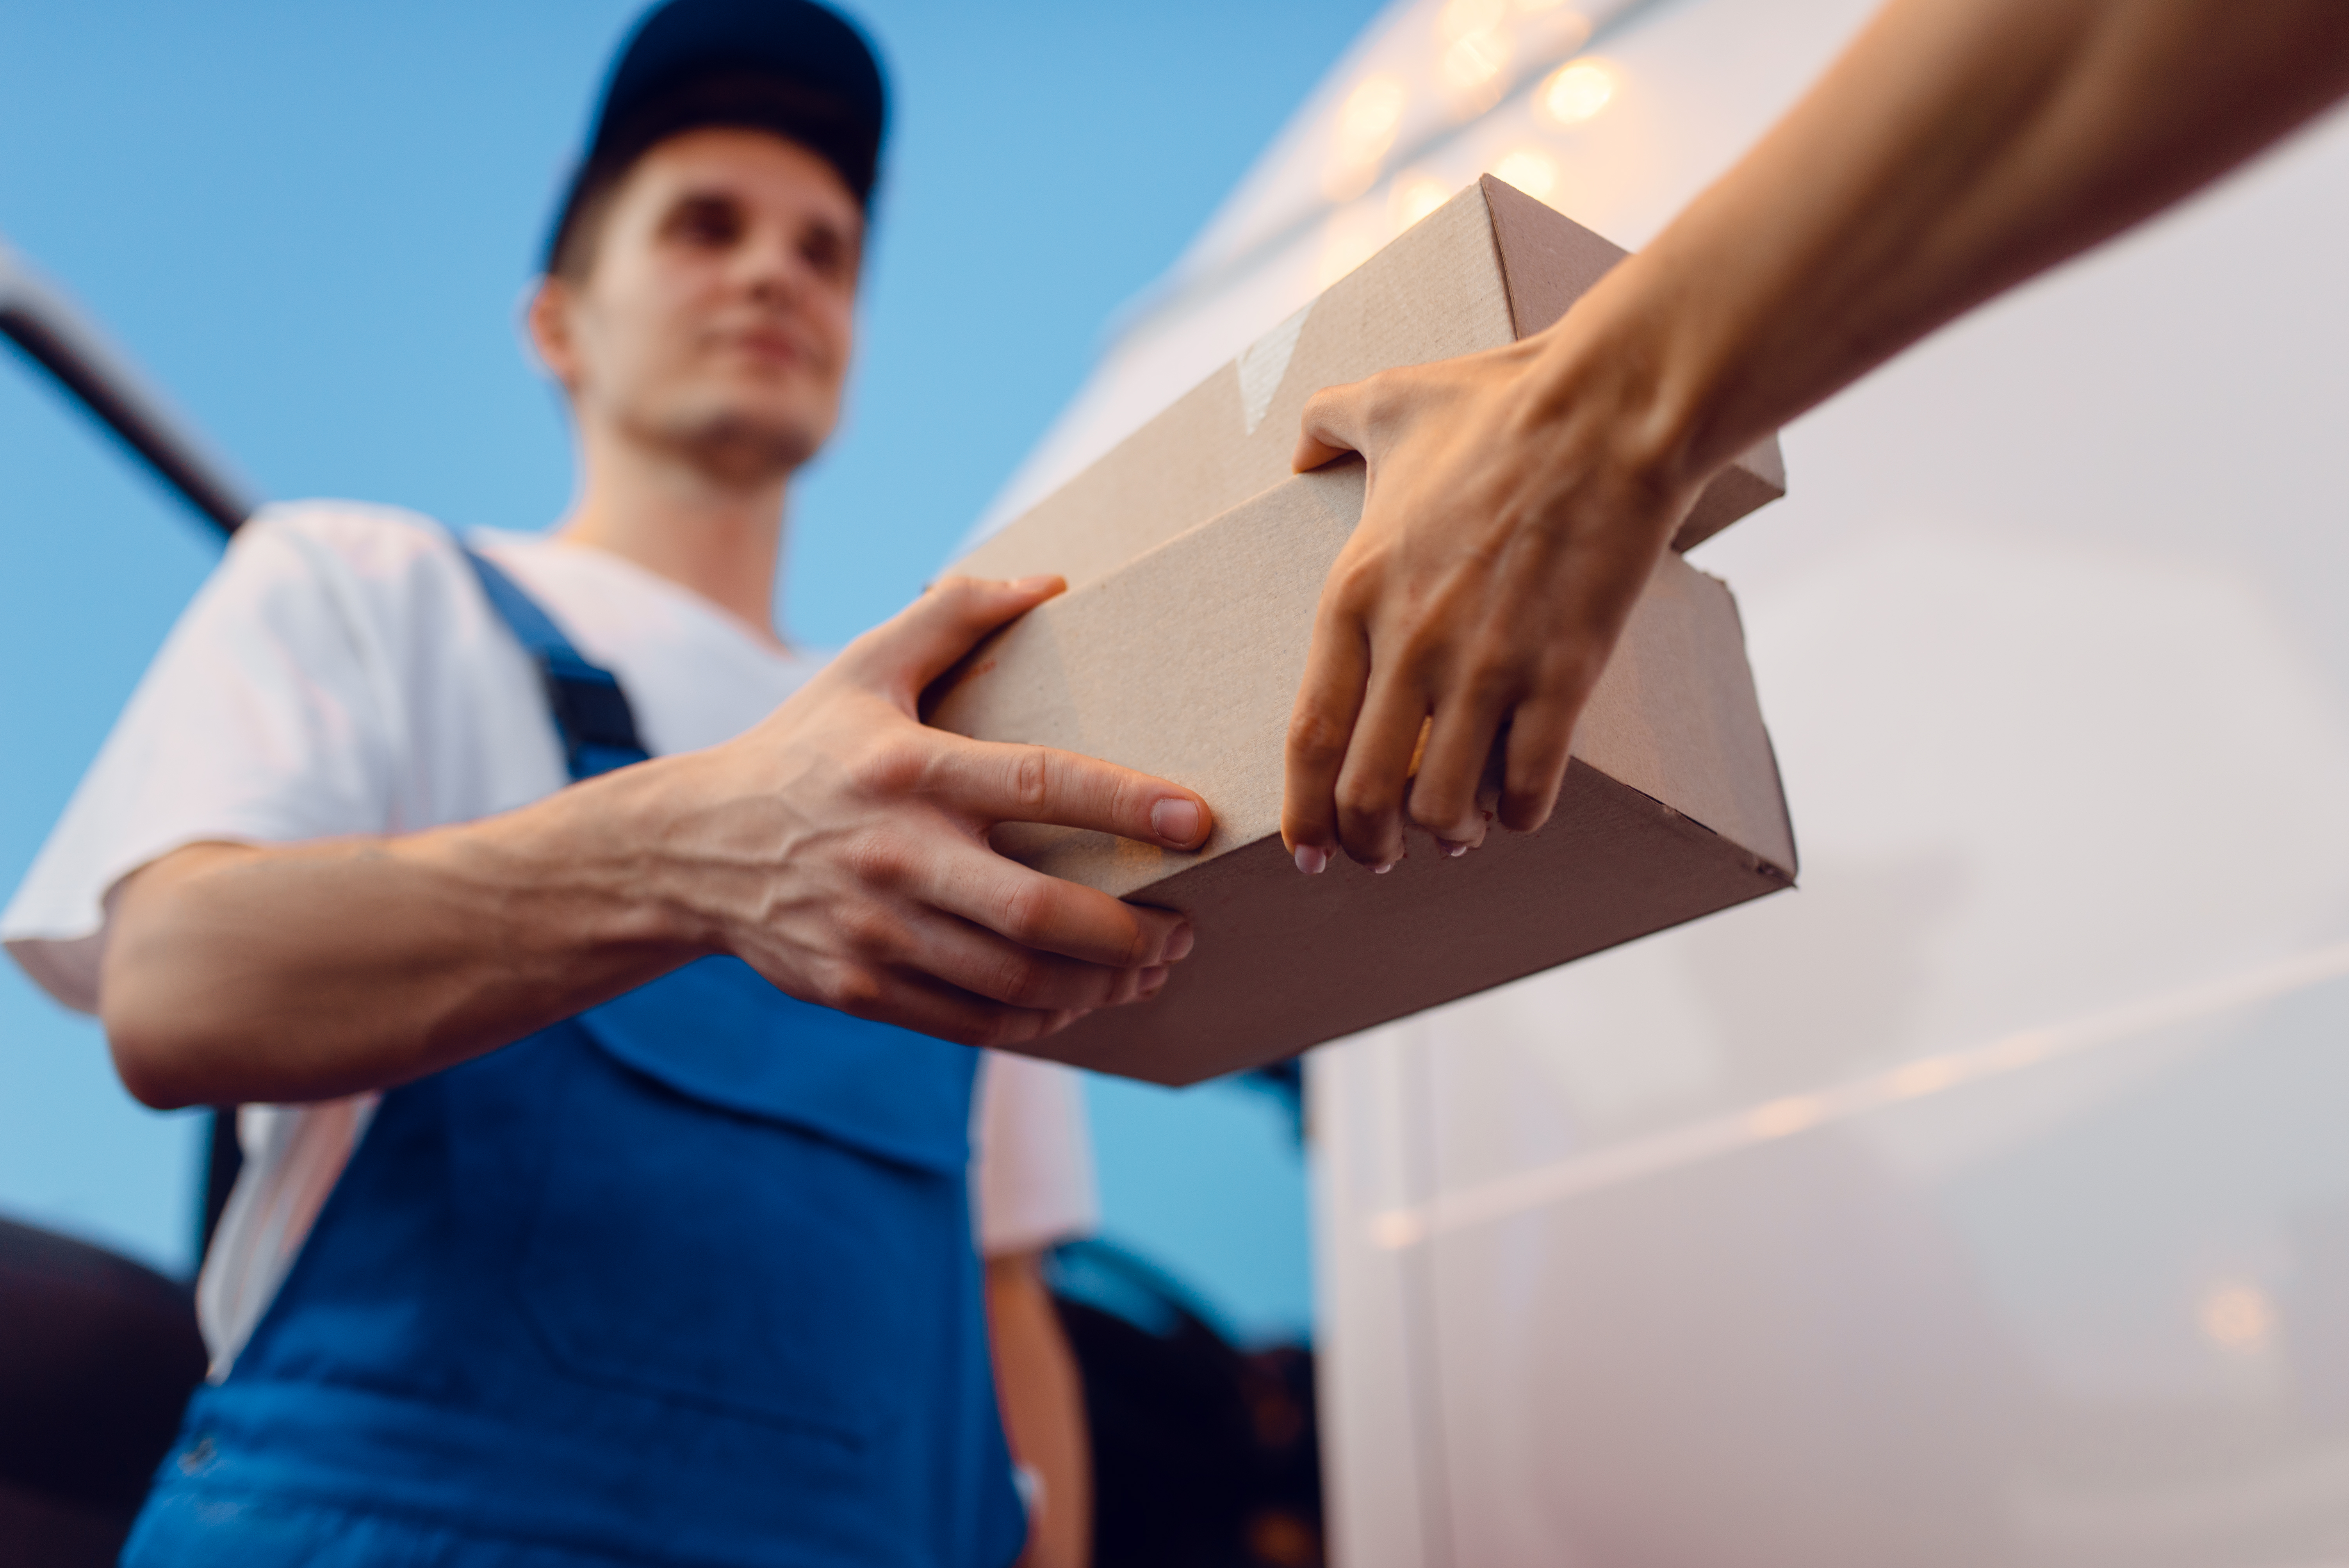 deliveryman-in-uniform-gives-parcel-to-female-recipient-at-the-car-delivery-service-man-holding-cardboard-package-near-the-vehicle-male-deliver-and-woman-courier-or-shipping-job